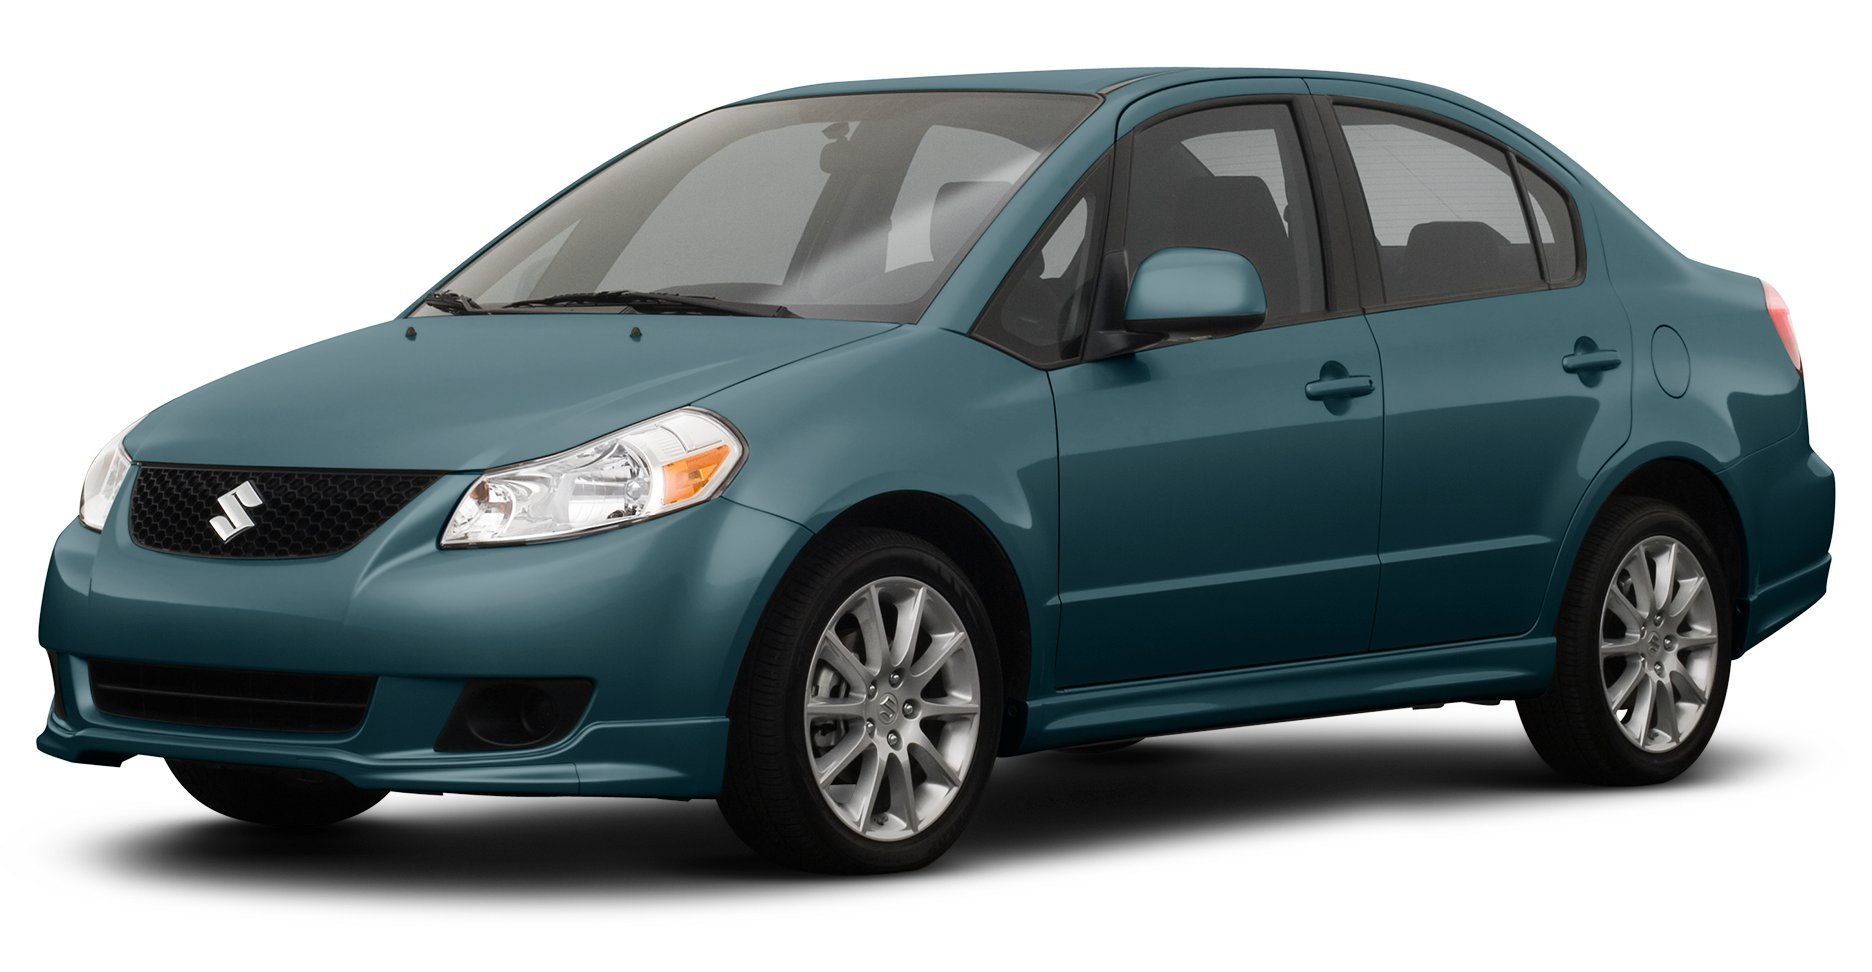 ... 2008 Suzuki SX4 Touring Package 1, 4-Door Sedan Manual Transmission ...